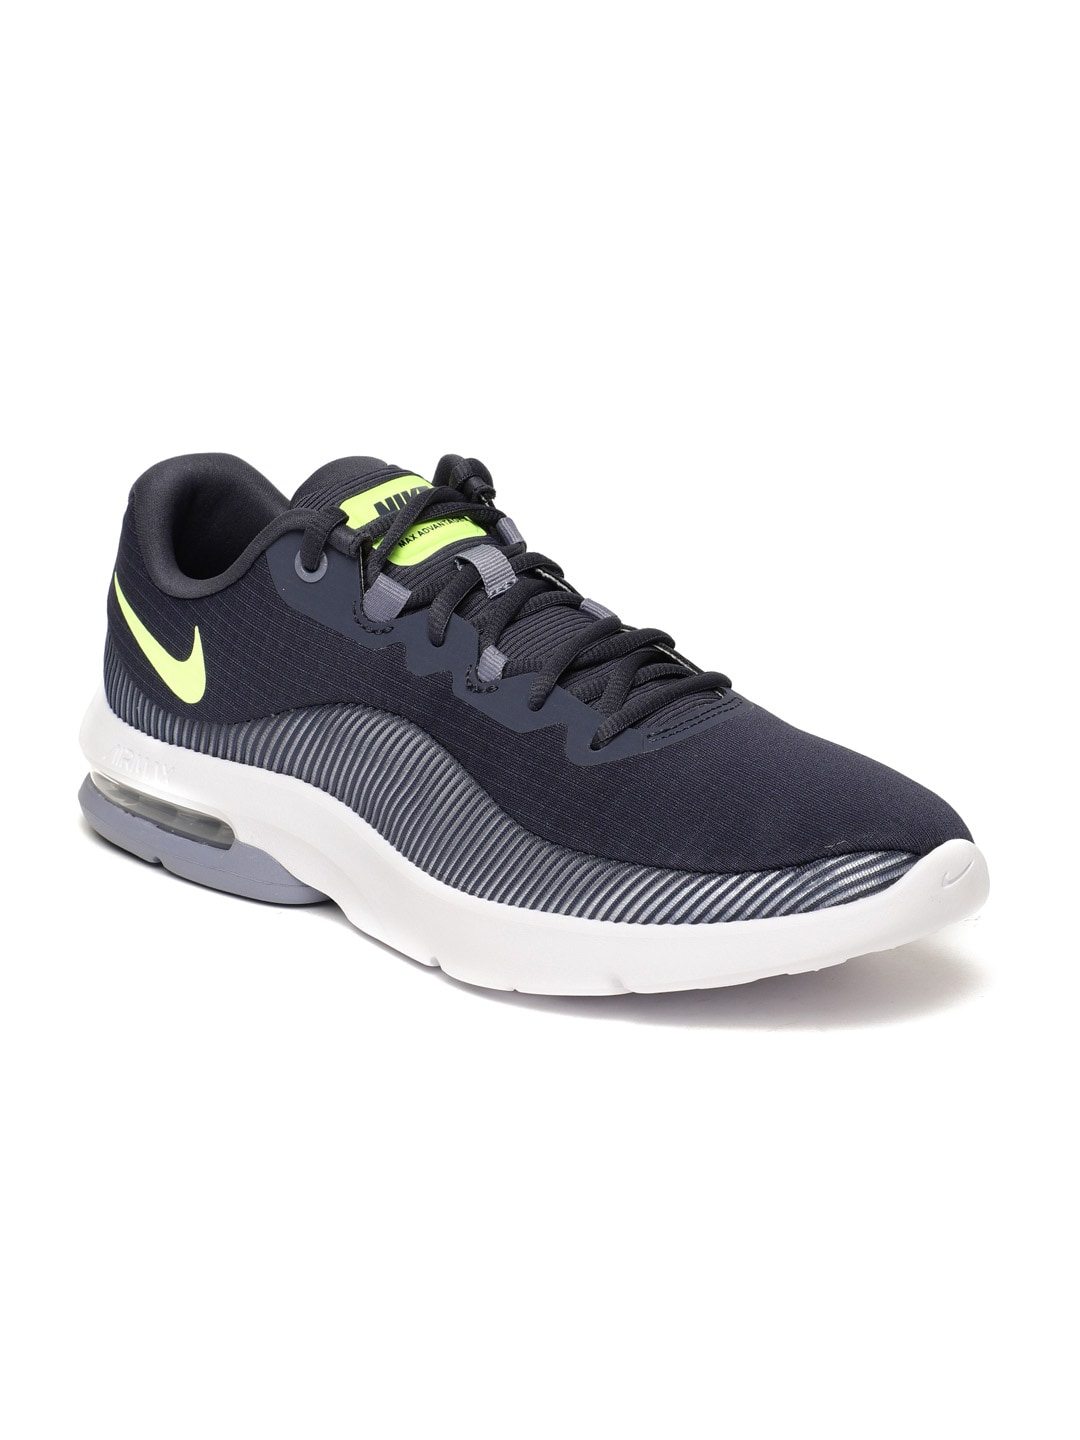 34f5169c500d9 Nike - Shop for Nike Apparels Online in India